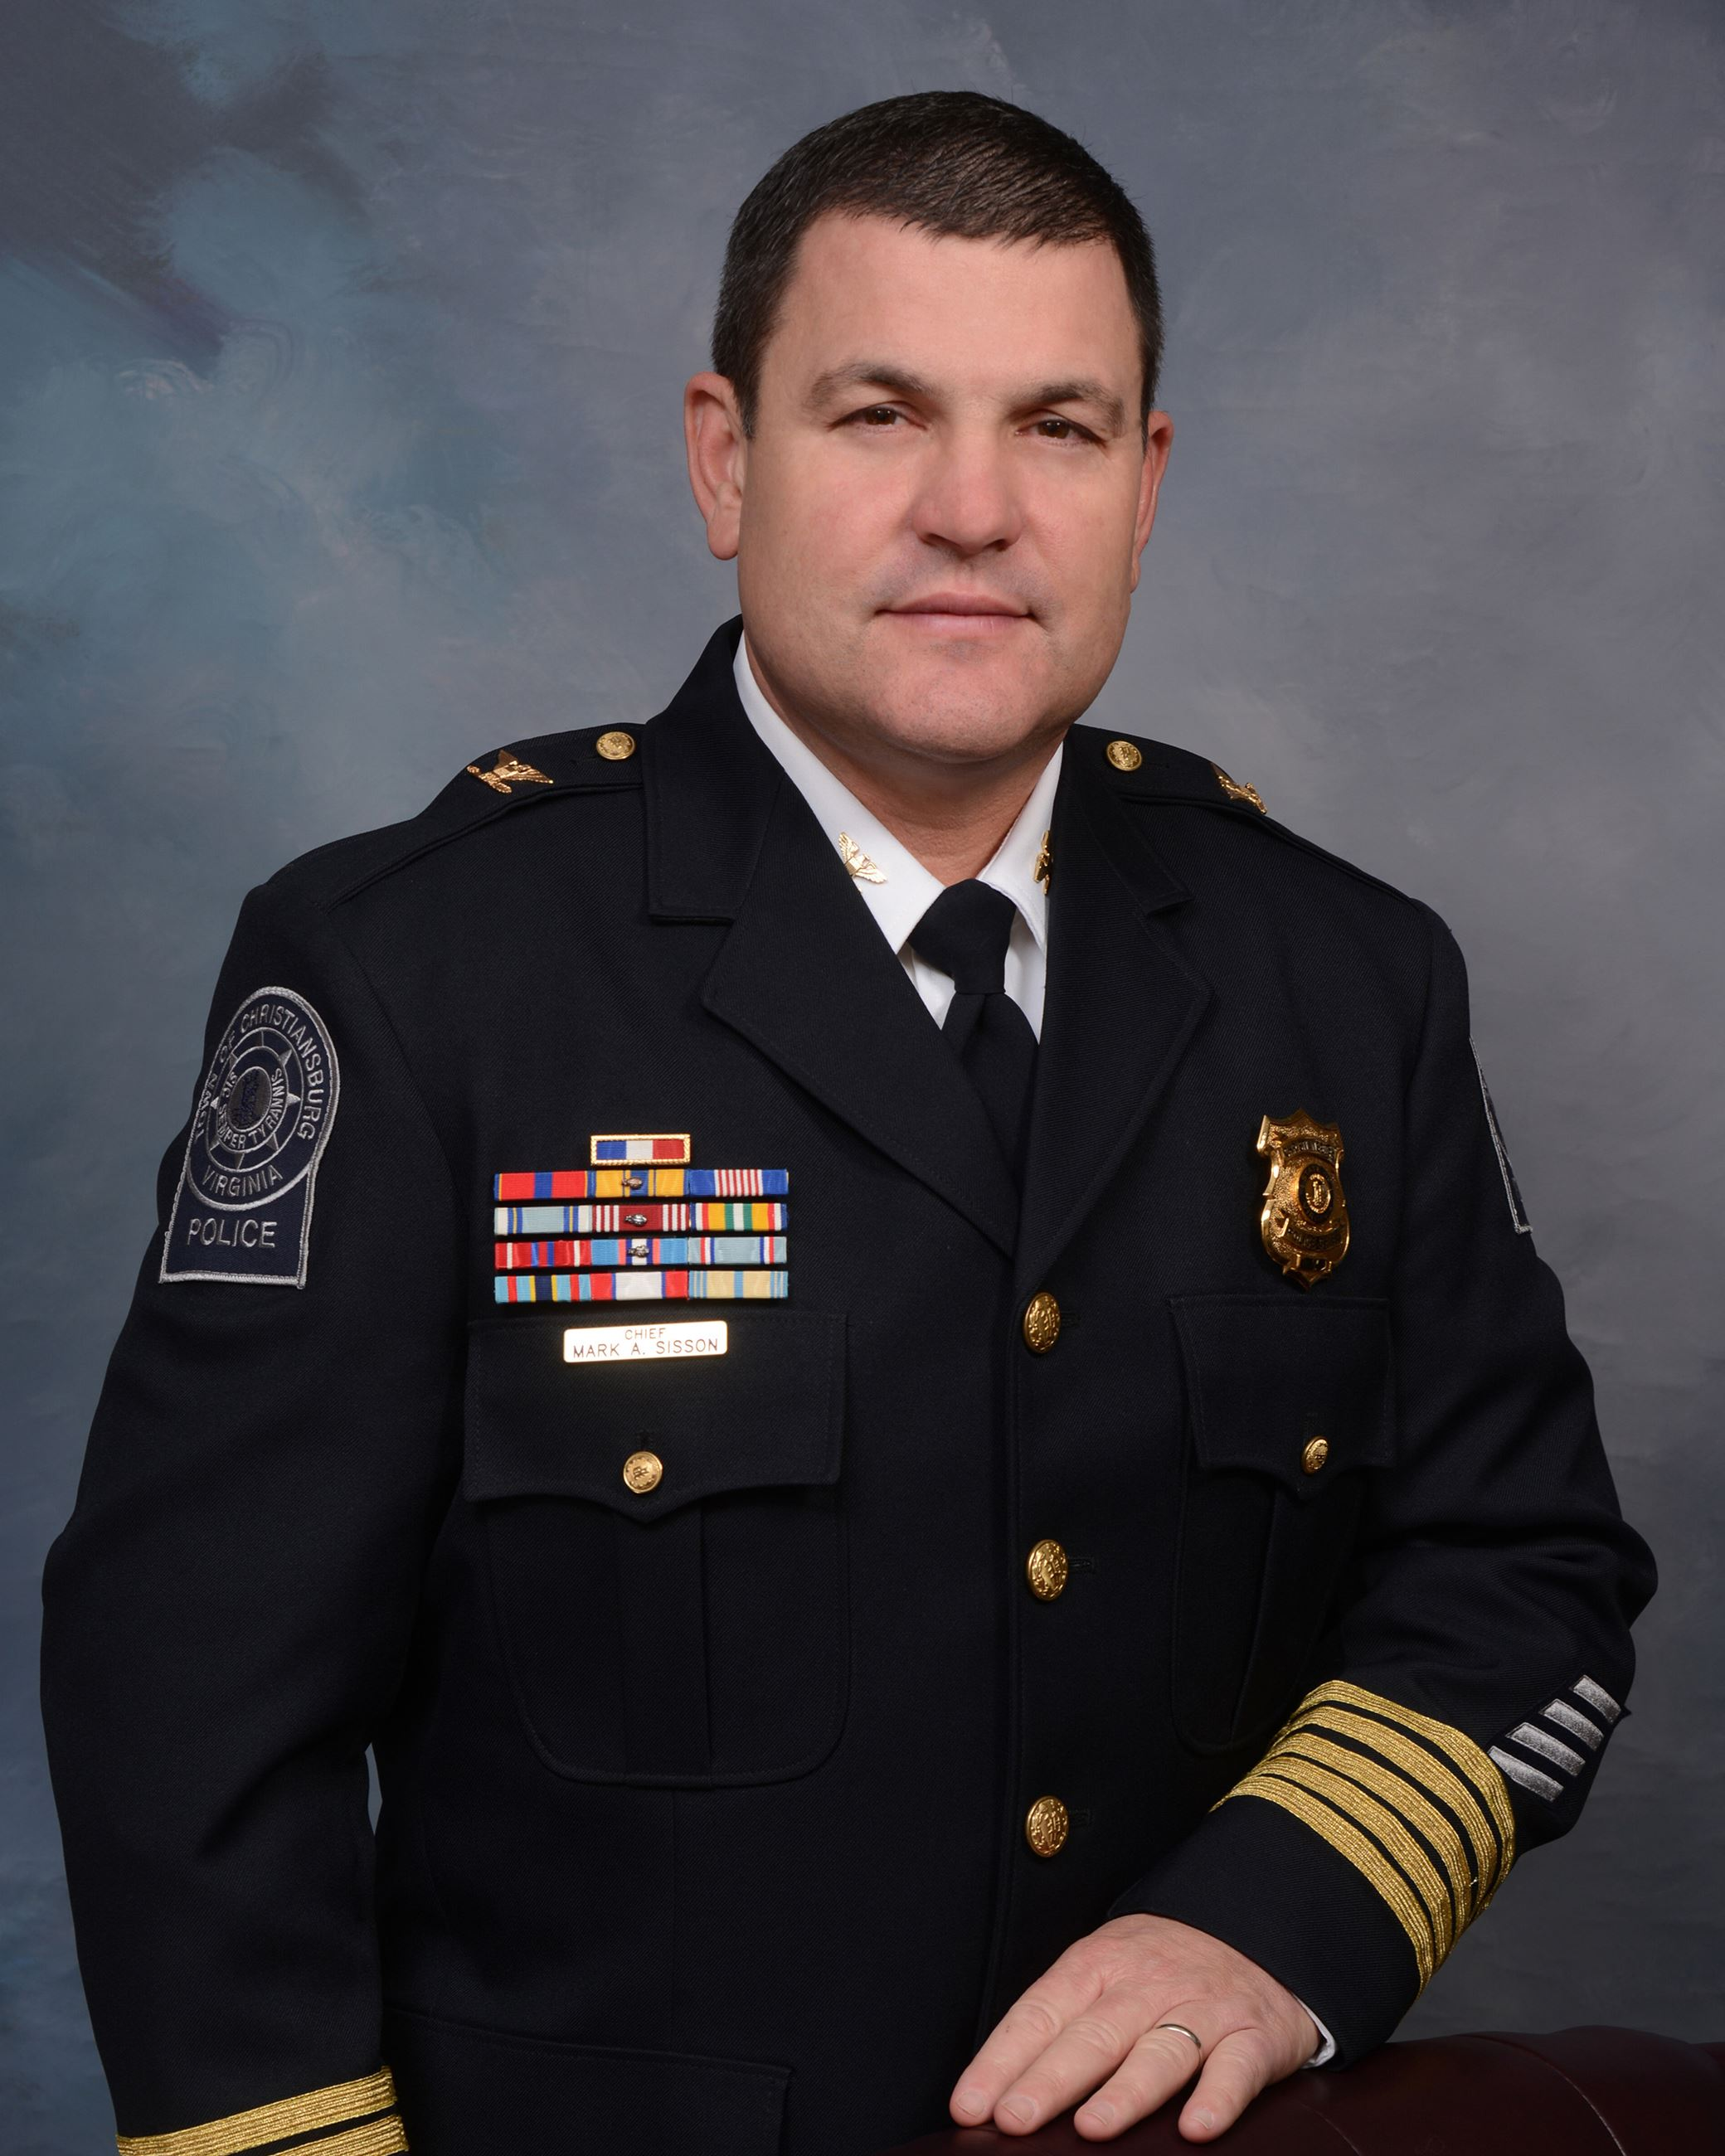 Chief Mark Sisson